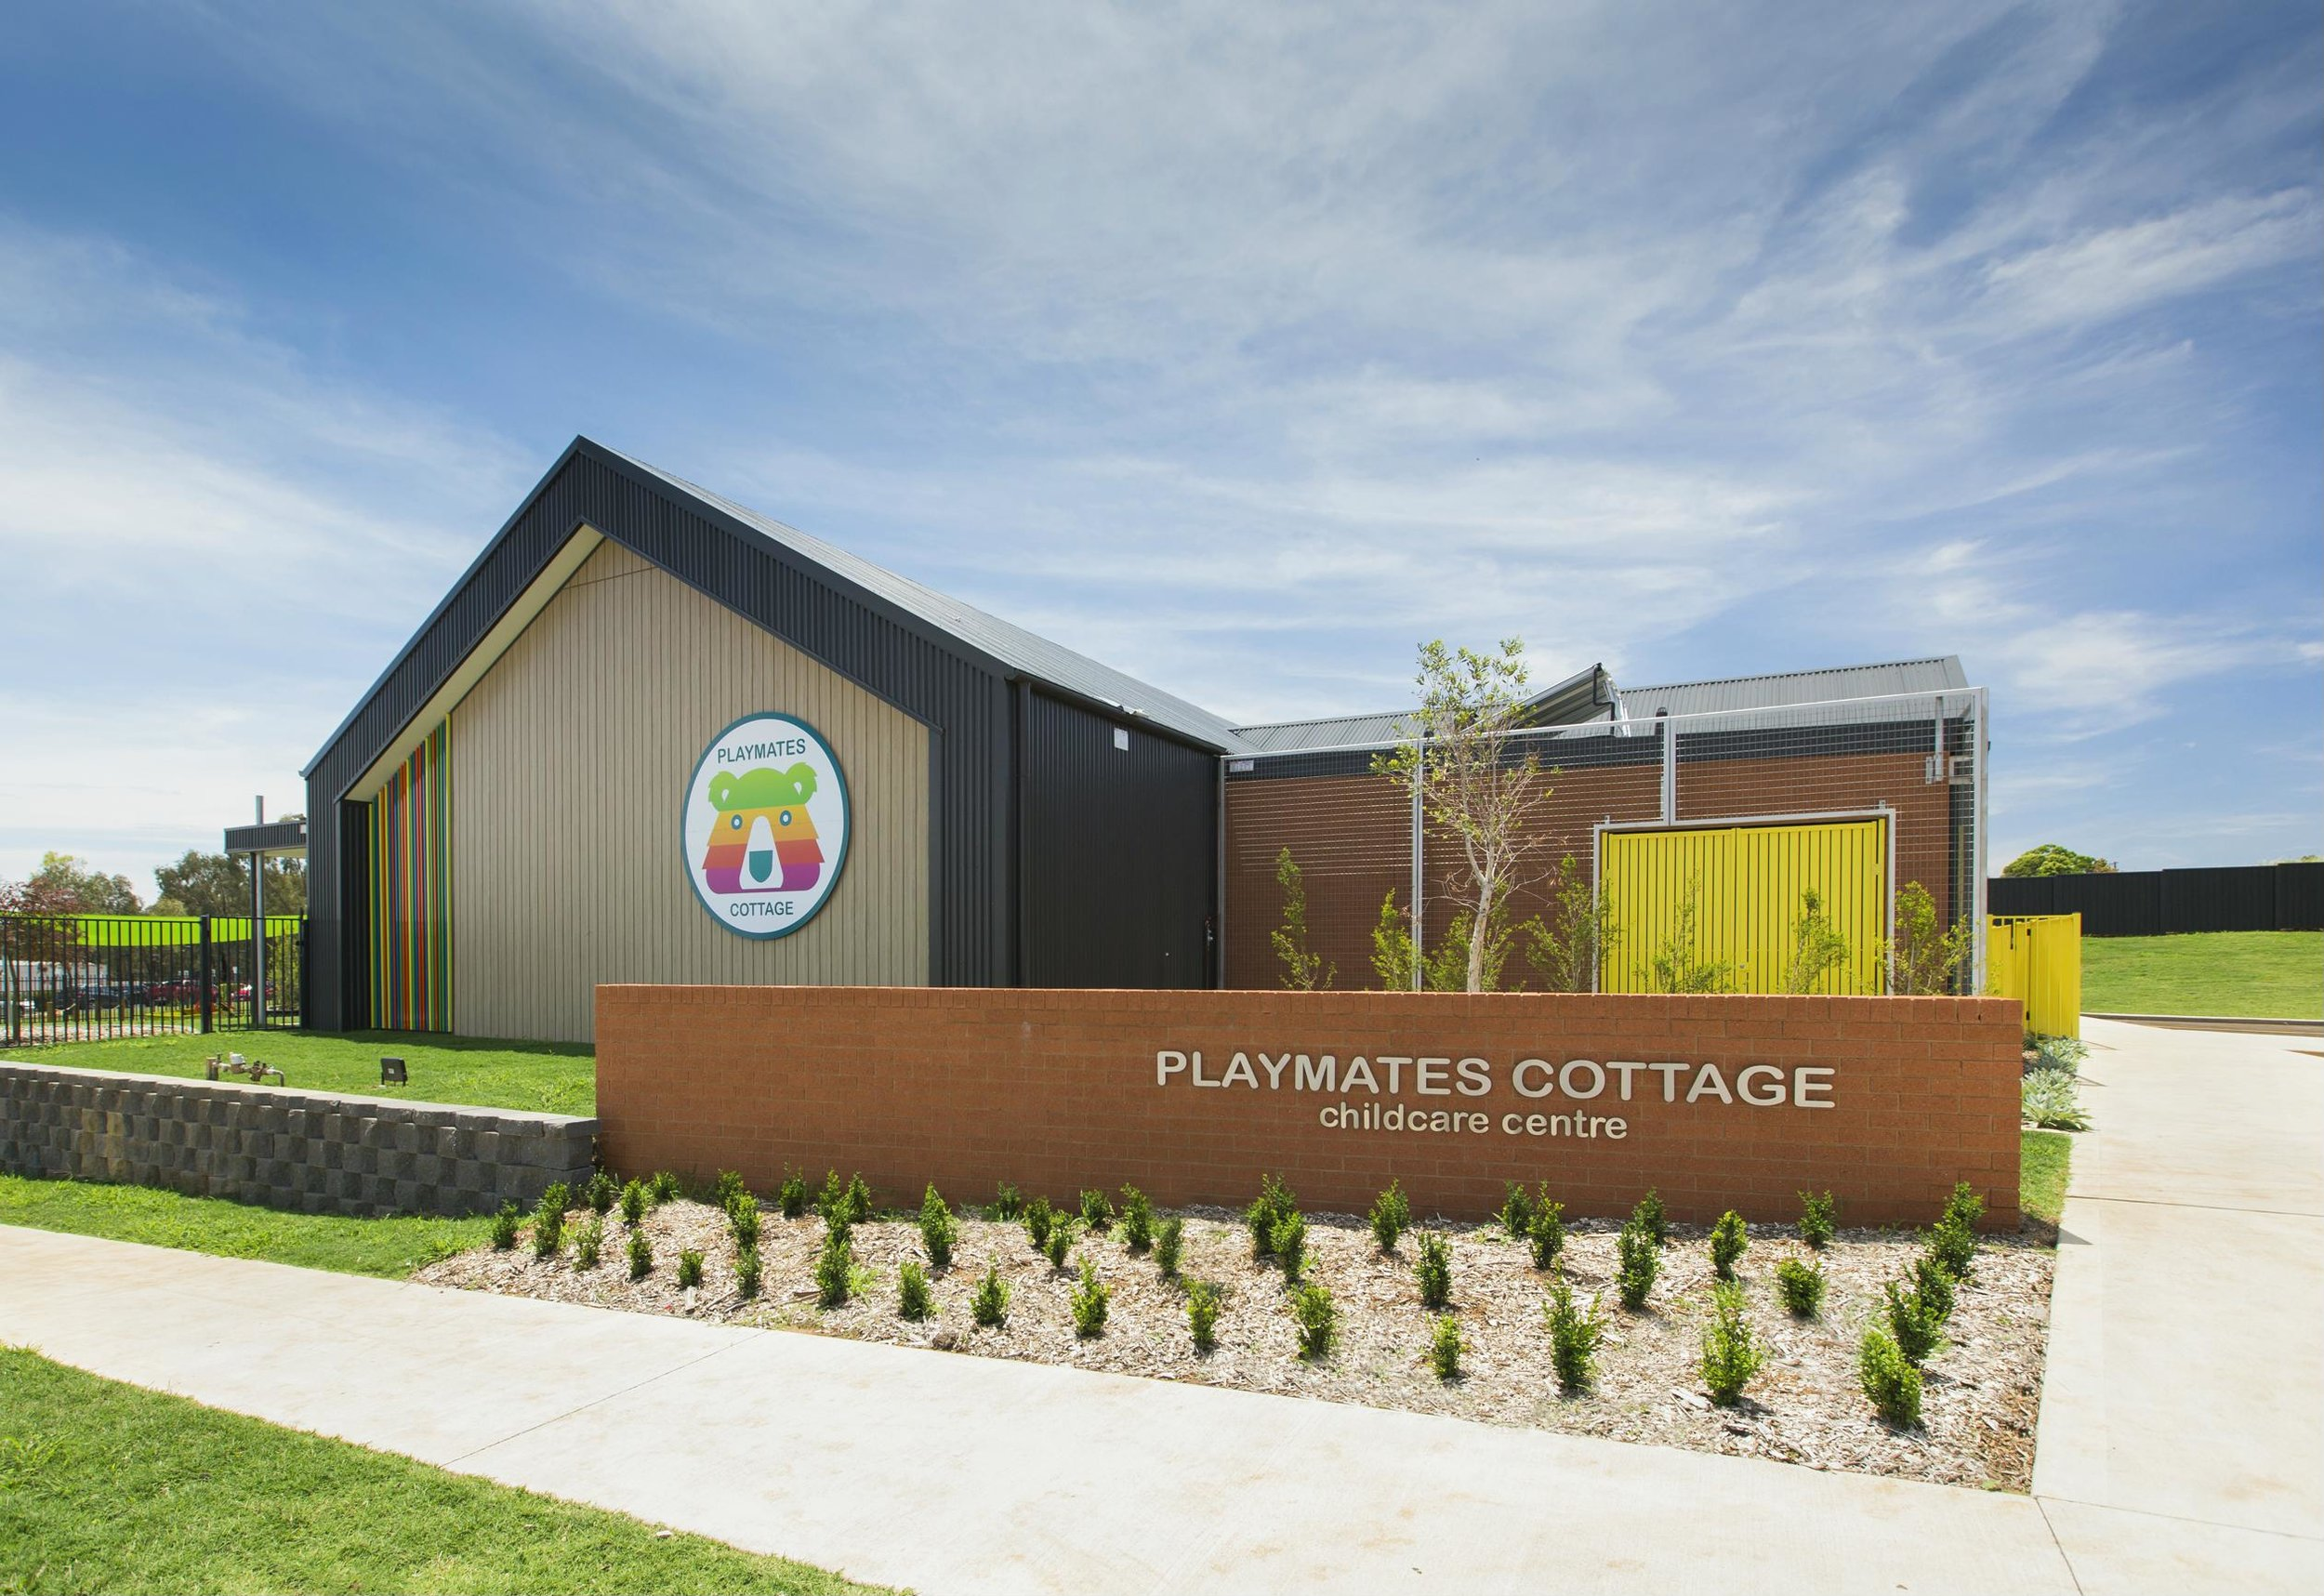 1-Playmates Cottage.jpg